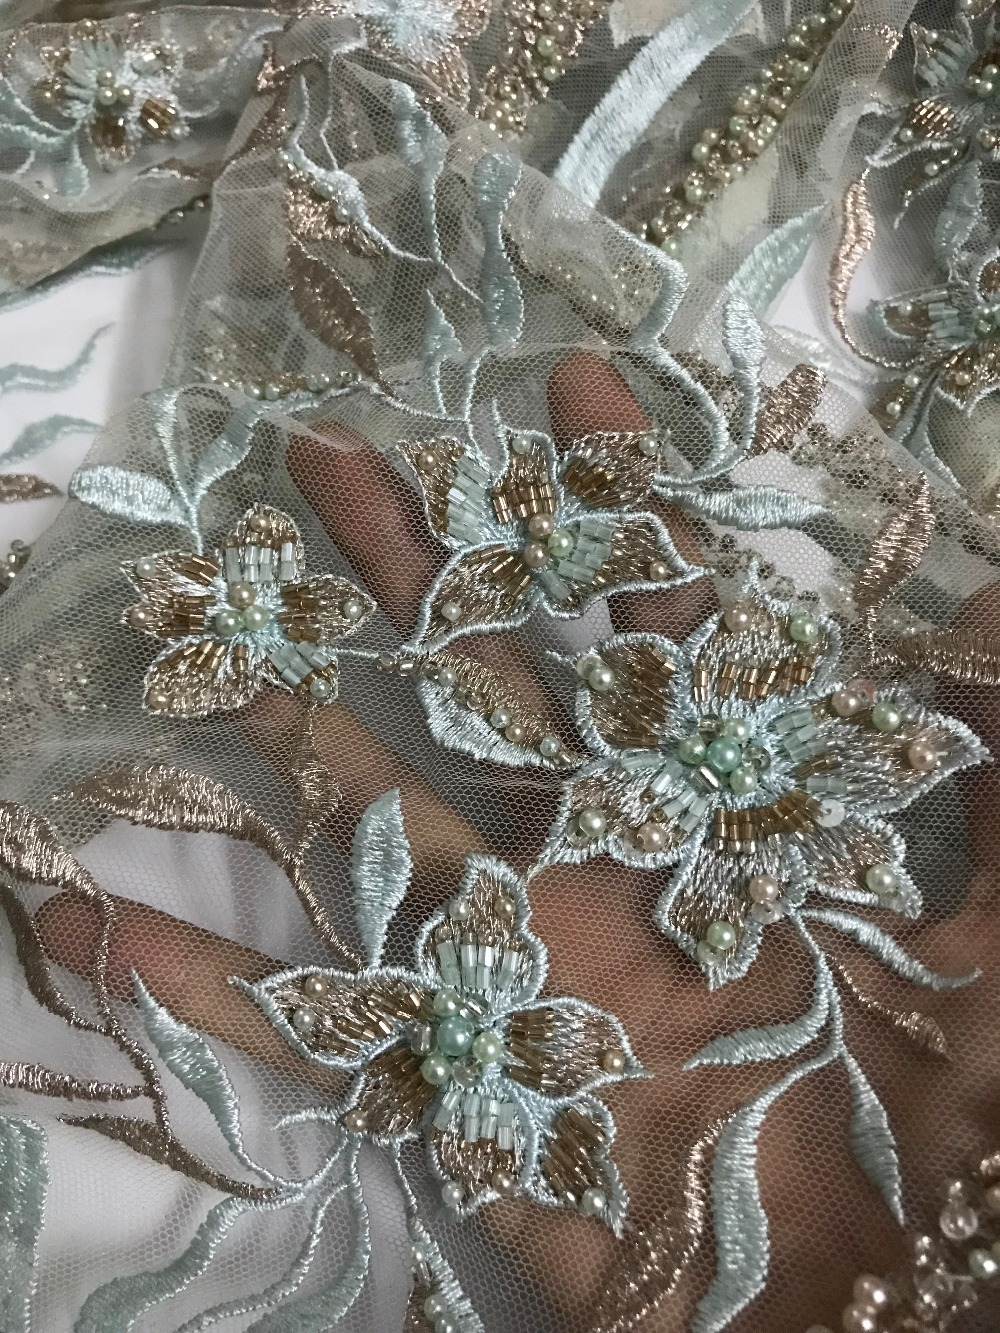 embroiderd lace fabric David 11 2202 with sequins beautiful Nigerian sequins lace fabric for party dress